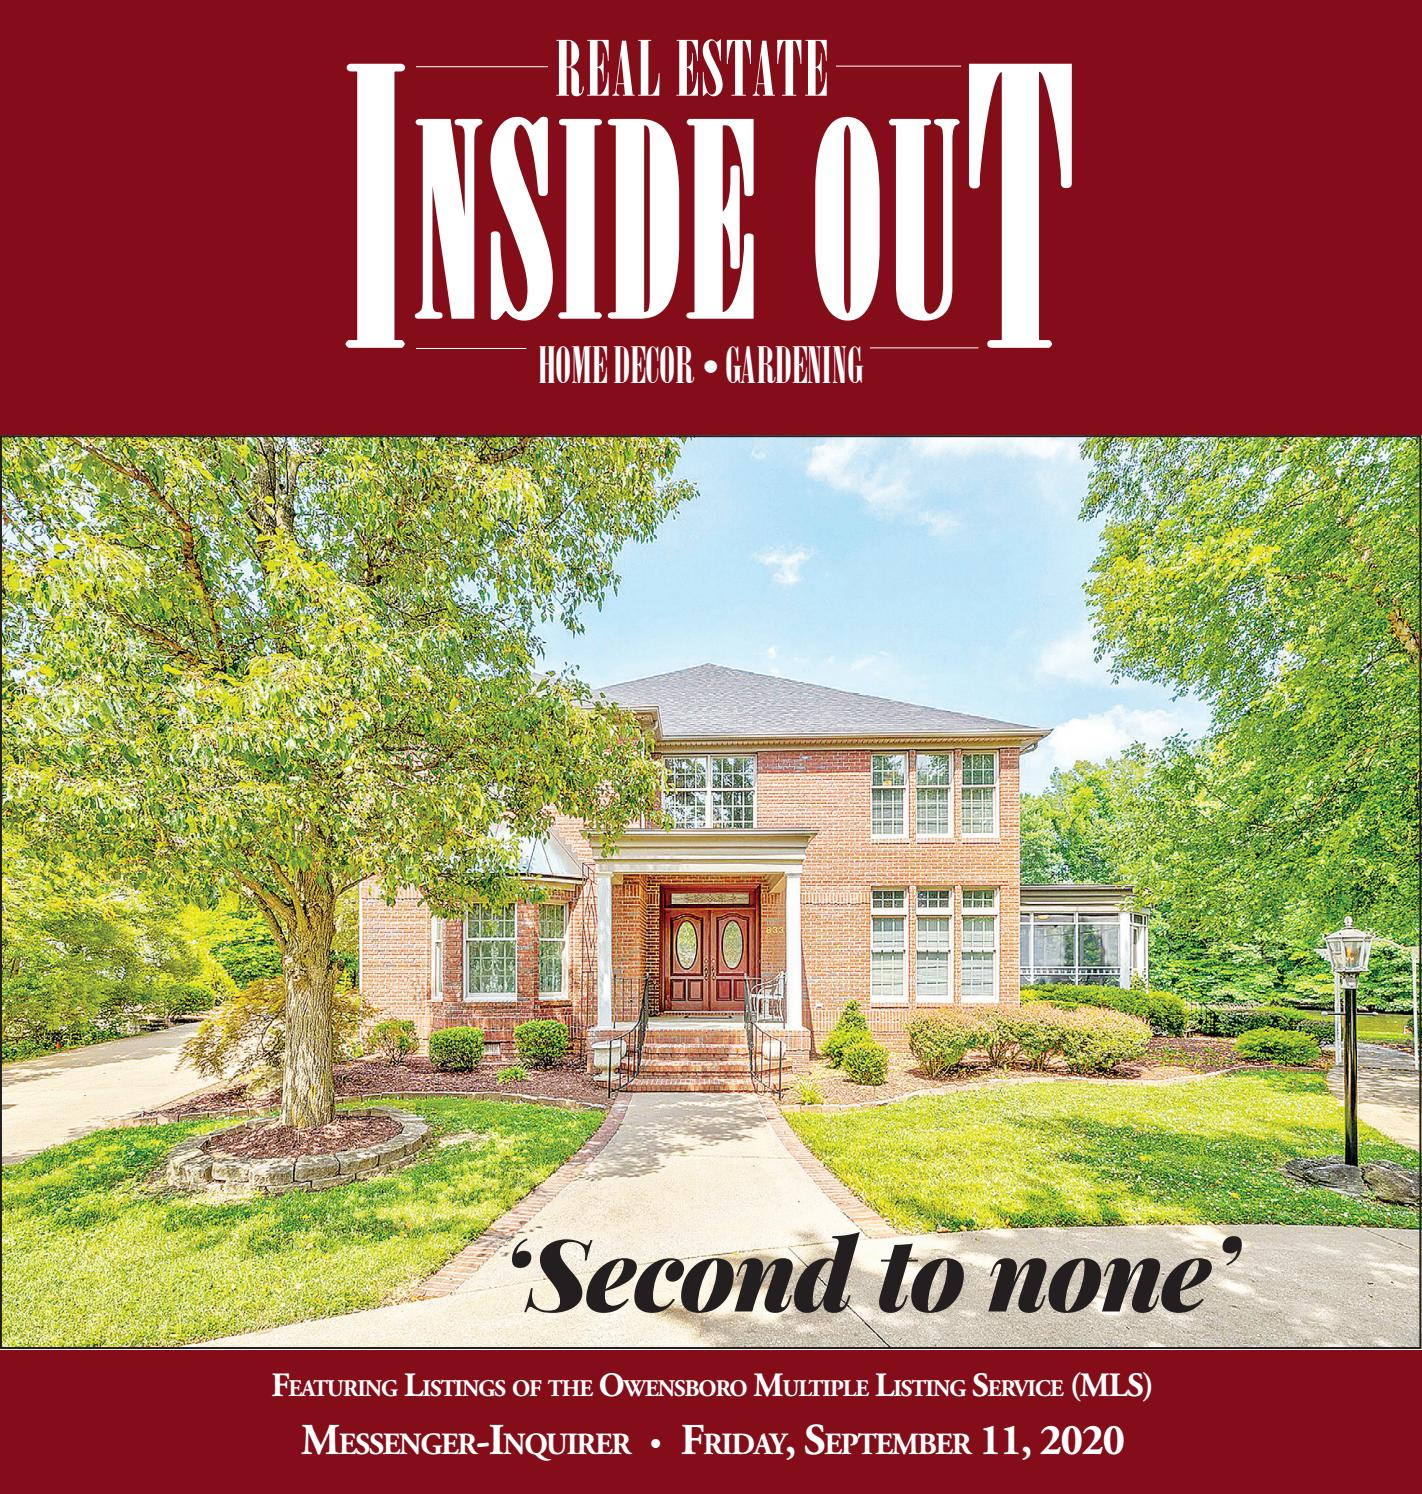 9 11 20 Real Estate Inside Out By Messenger Inquirer Issuu These properties are owned by a bank or a lender who took ownership through foreclosure proceedings. issuu